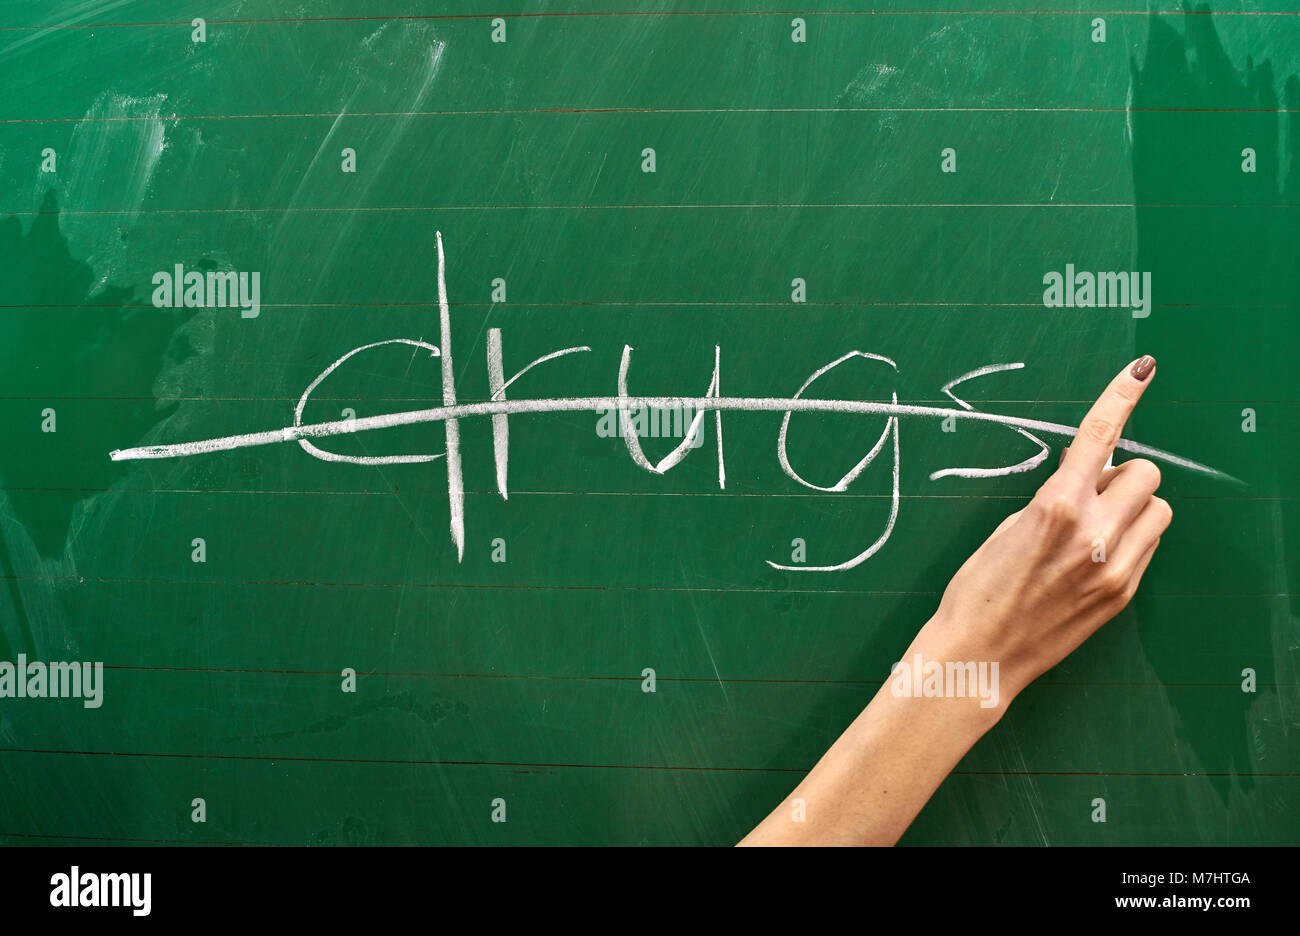 Right hand of a teenage girl writing drug protest on the green school board background - Stock Image